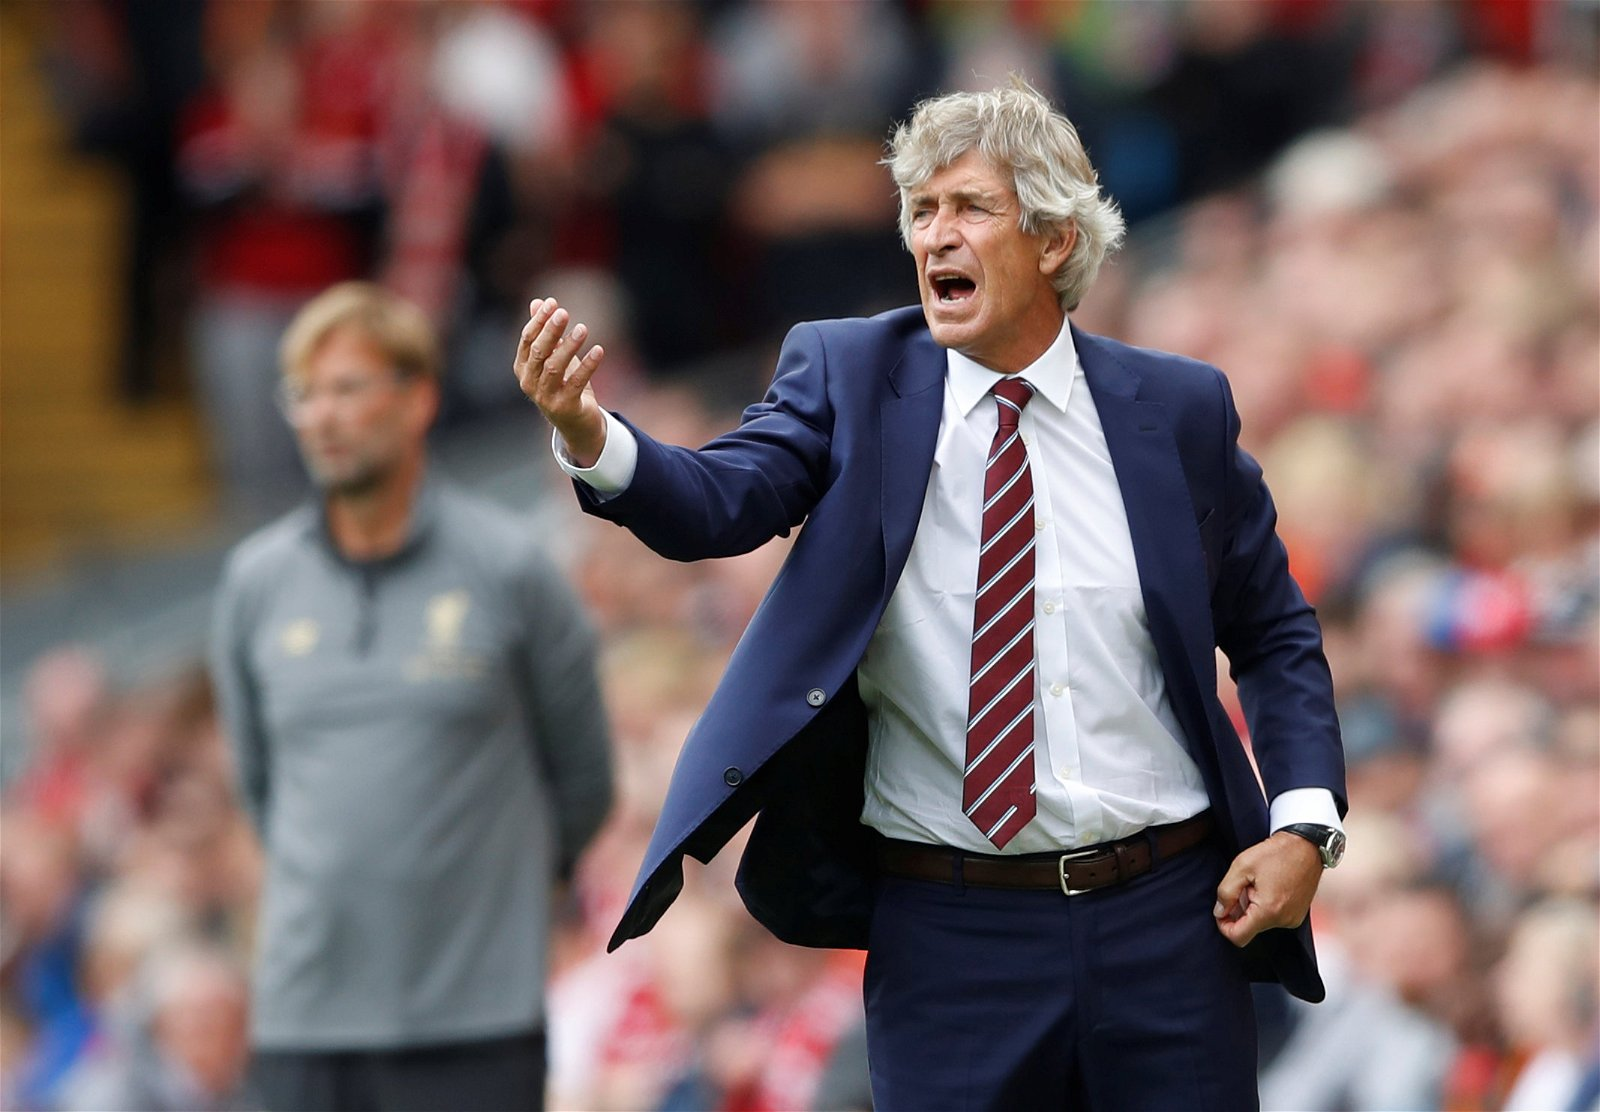 Manuel Pellegrini gives orders from the touchline